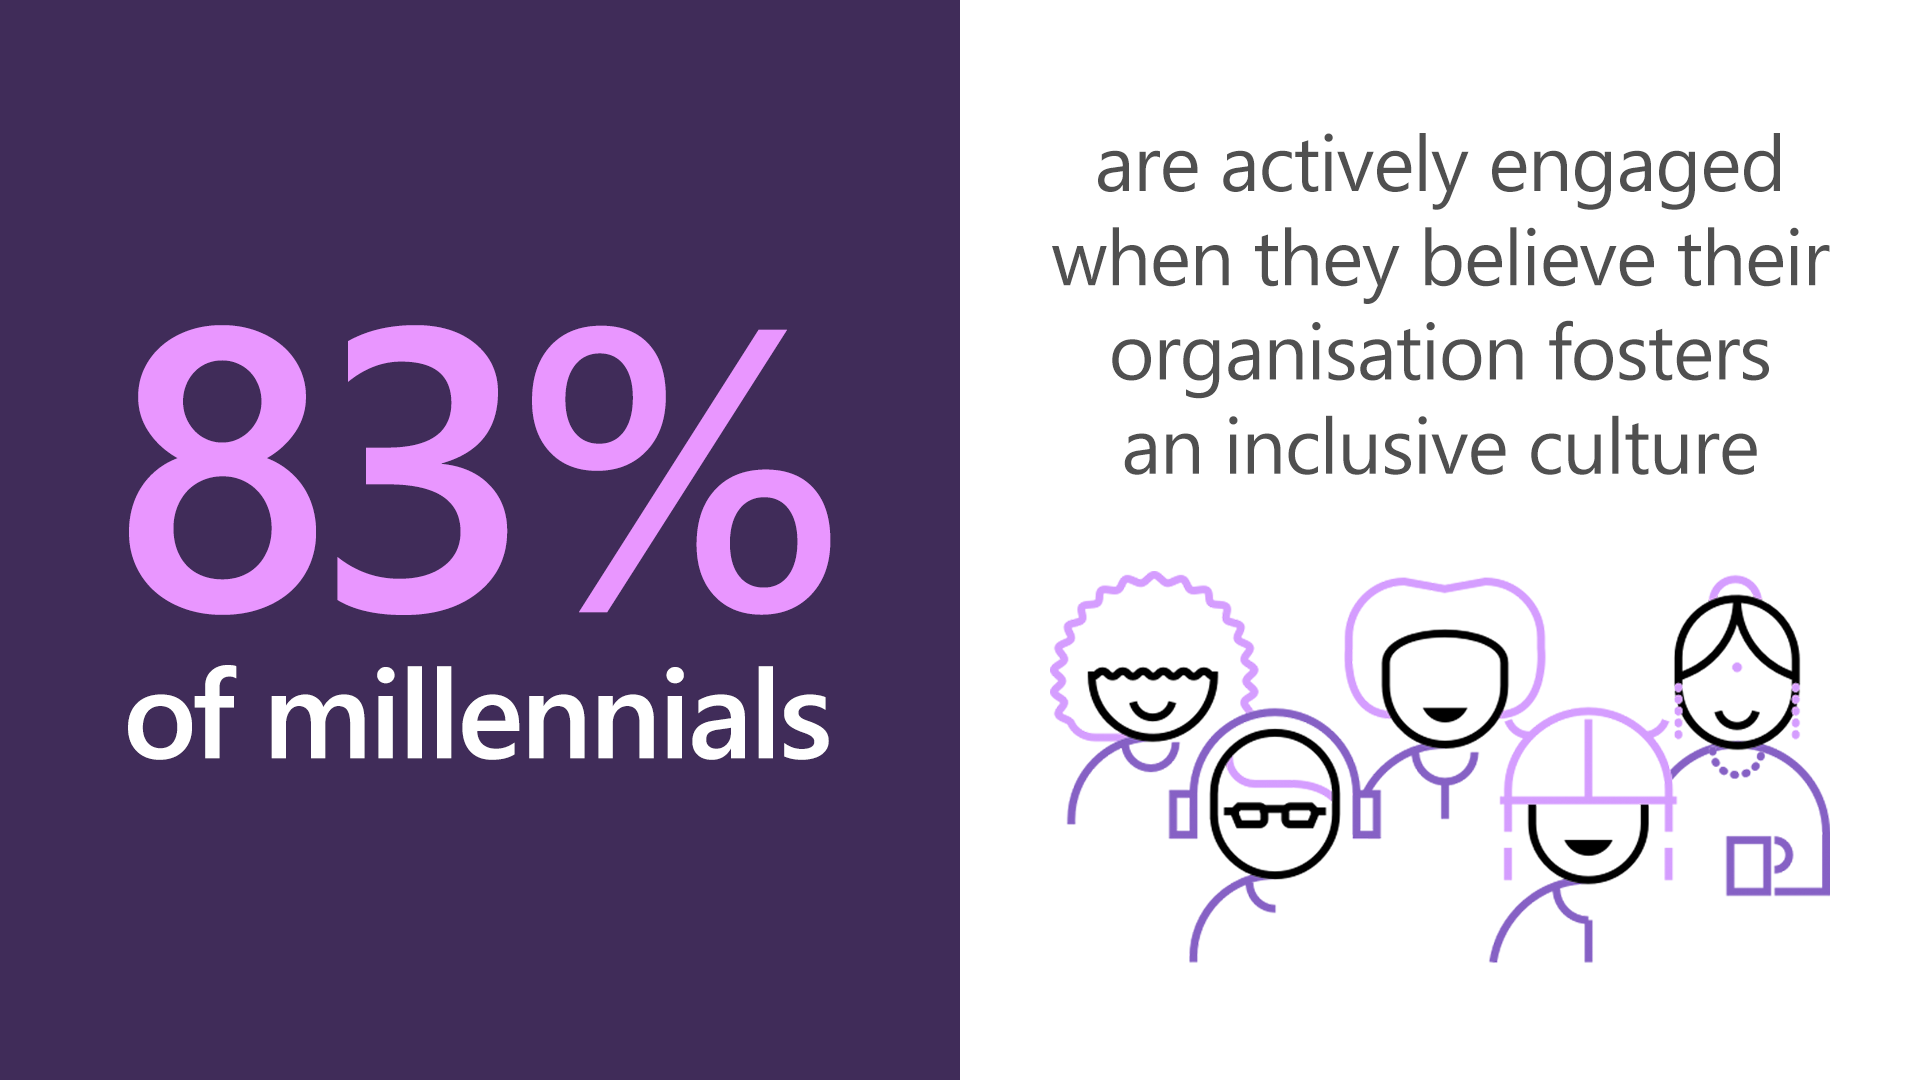 83 percent of millennials are actively engaged when they believe their organisation fosters an inclusive culture.